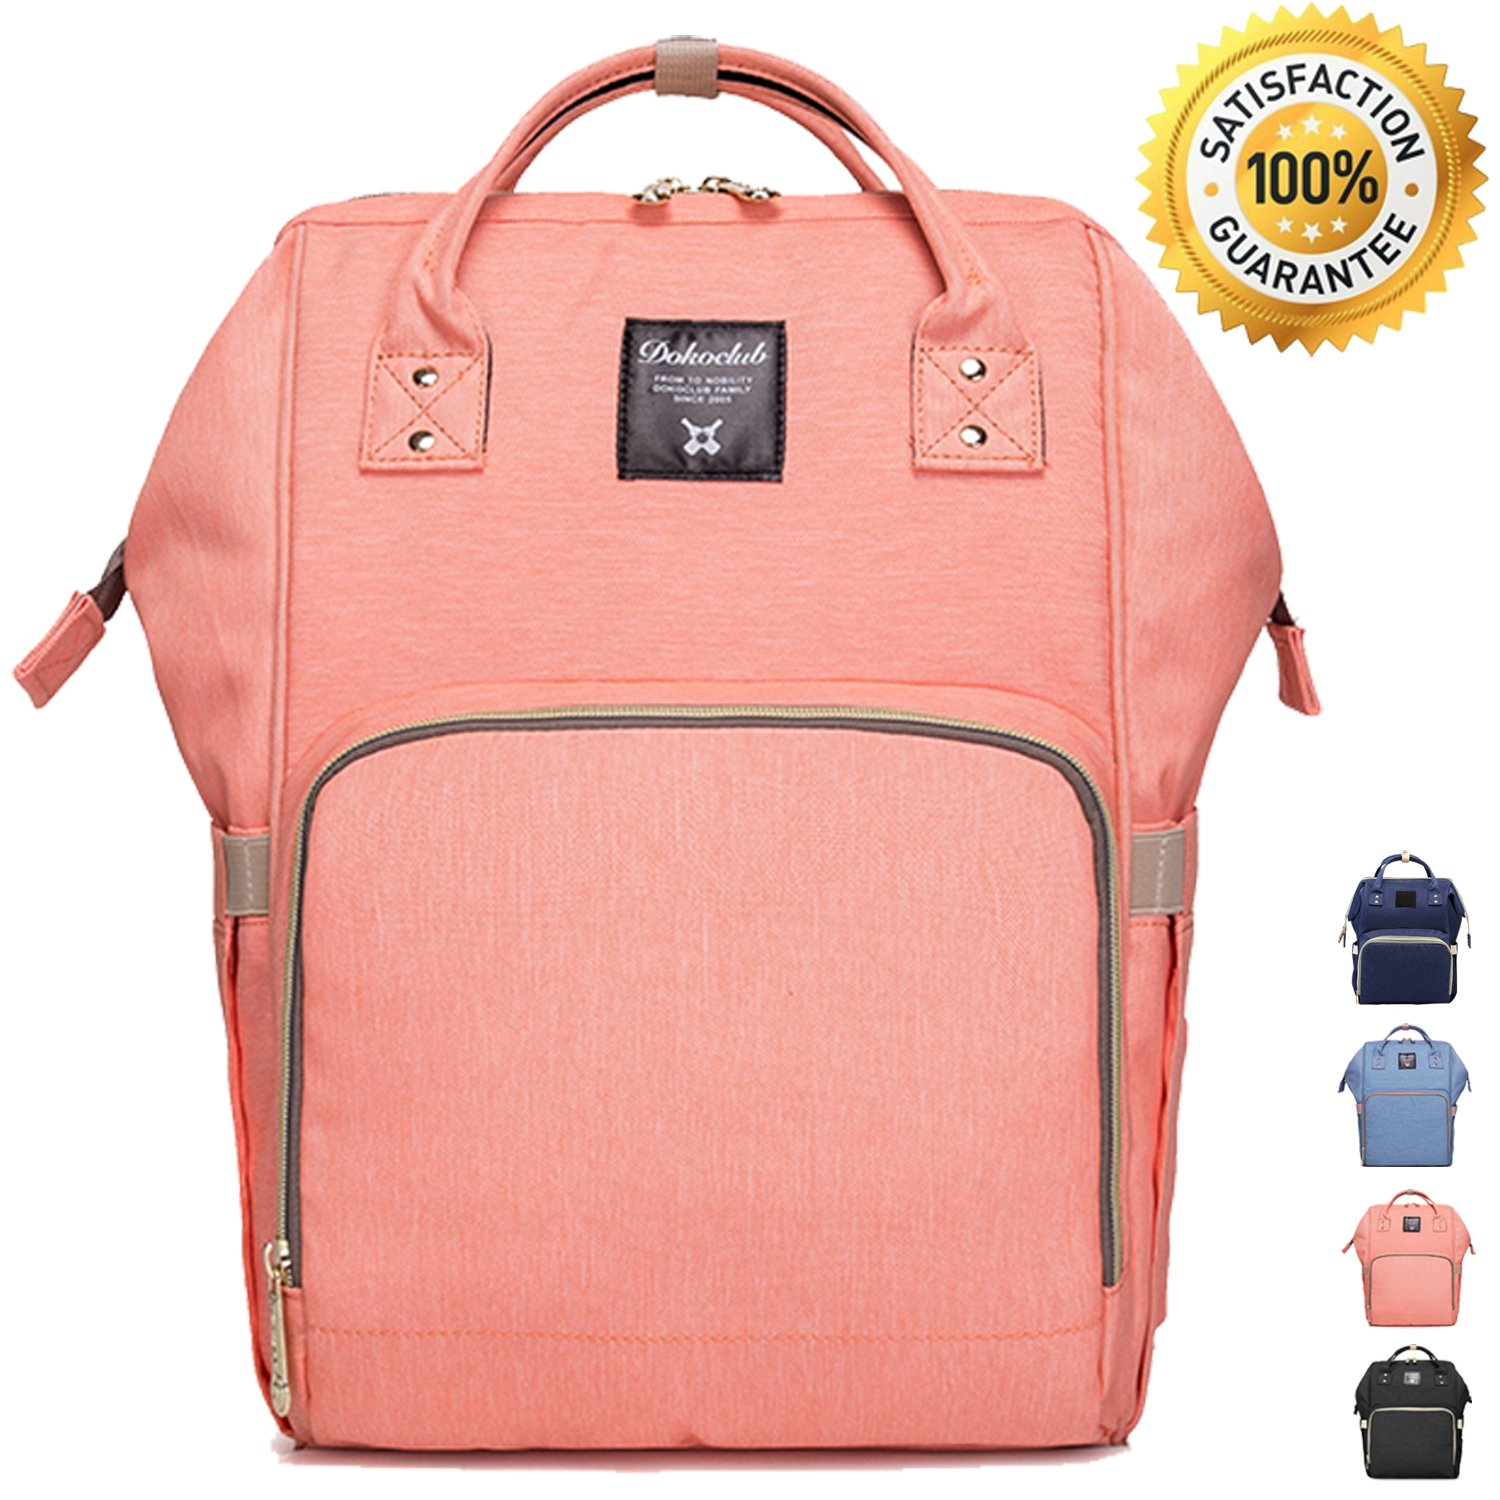 [New Arrival] Diaper Bag Backpack by Lmeison, Fashion and Function in One Bag, Multi-Function Waterproof Travel Backpack Nappy Bags for Baby Care, Large Capacity, Stylish and Durable (Pink)